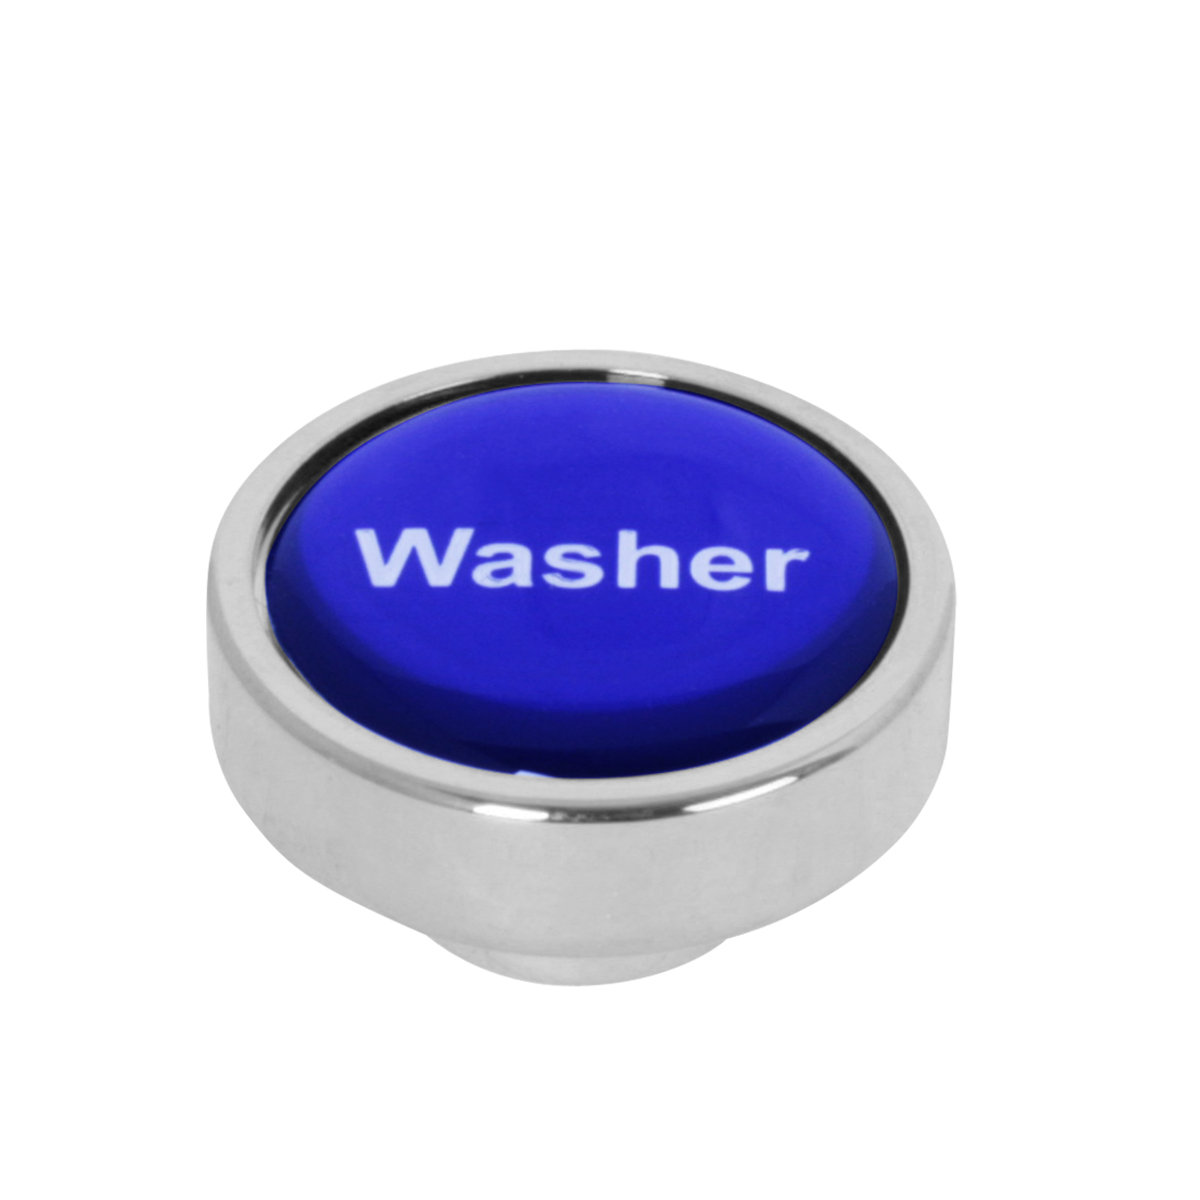 96311 Dashboard Control Knob w/ Washer Script